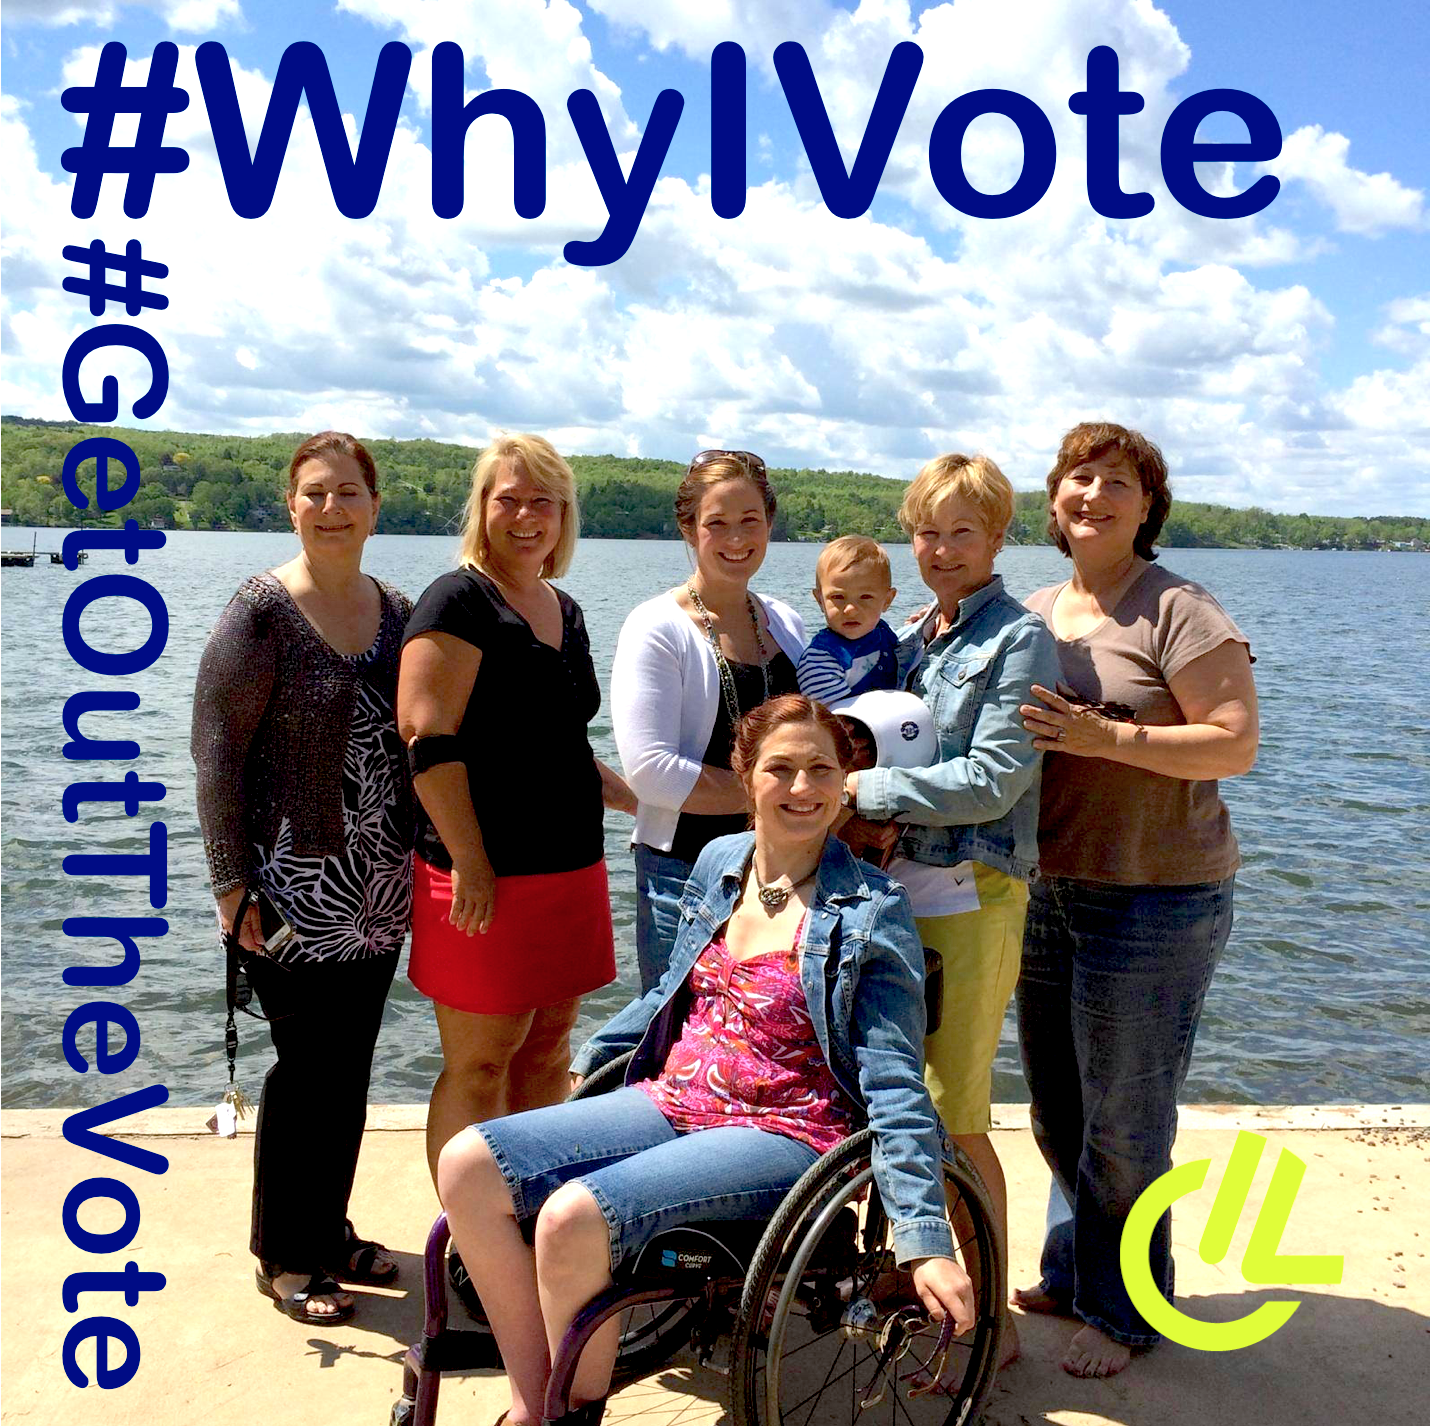 Robin Bennett #whyivote campaign photo of women in front of lake